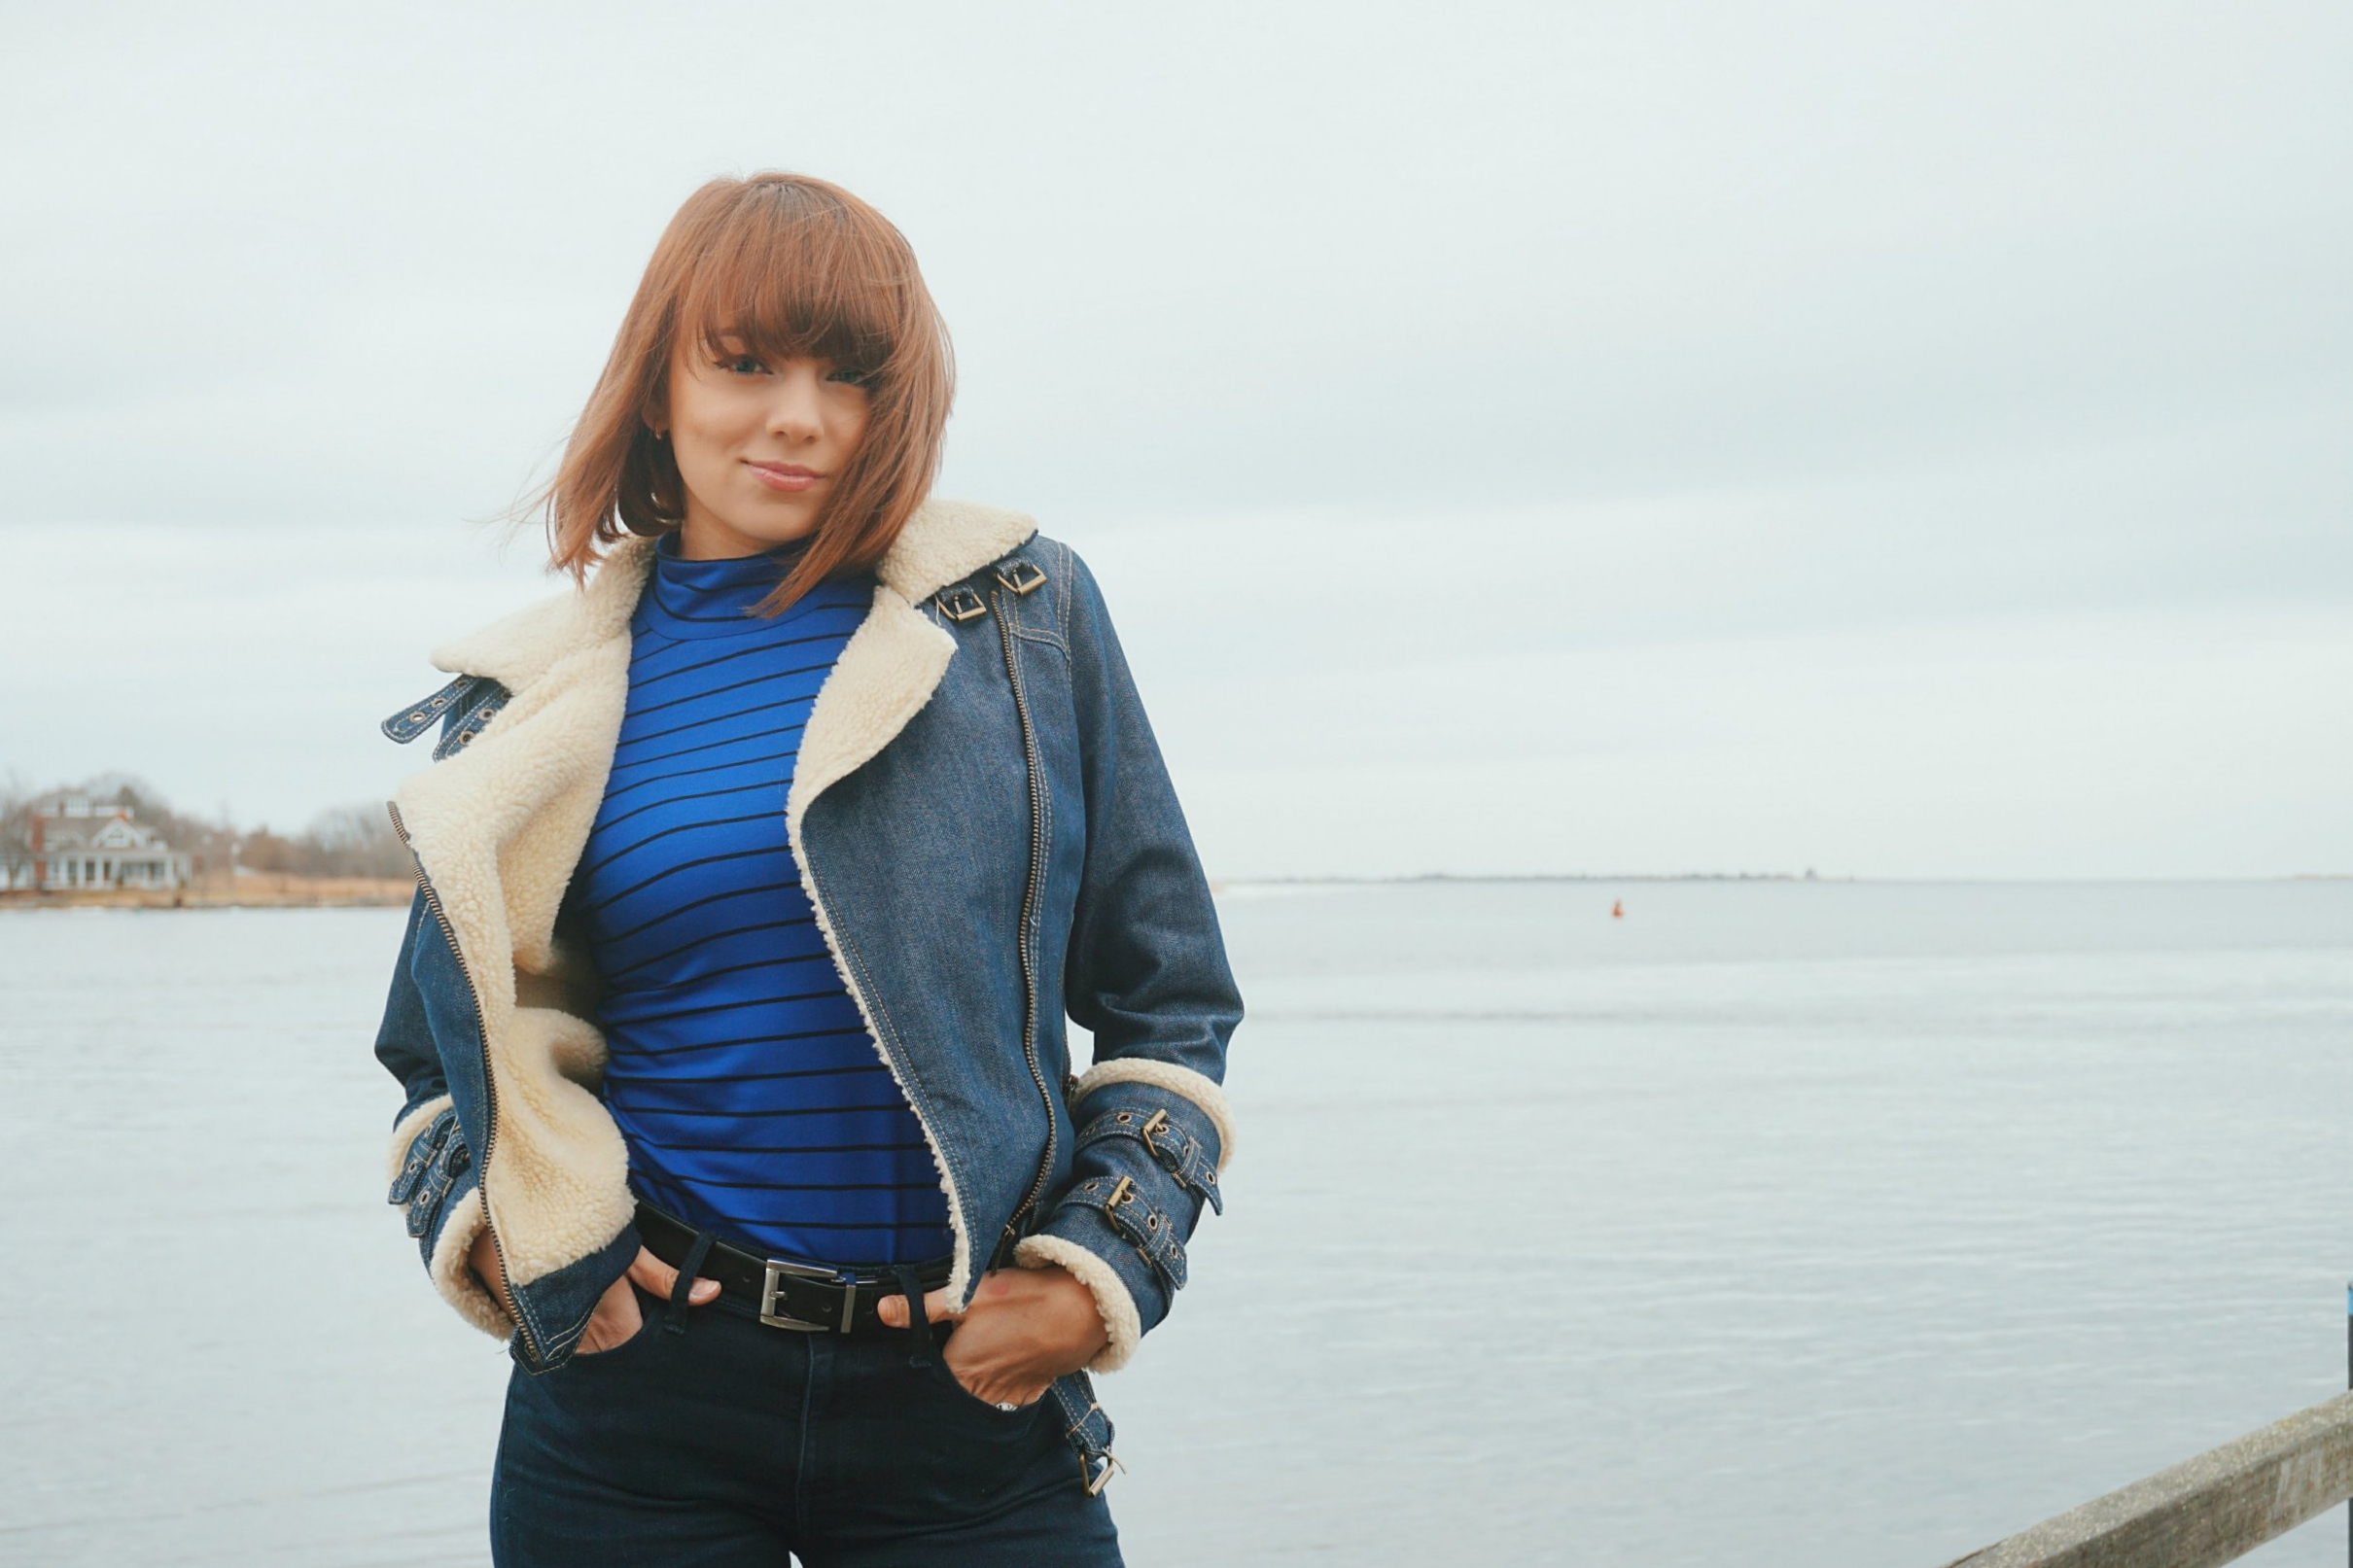 A girl wearing a blue turtleneck, denim winter jacket, and jeans.